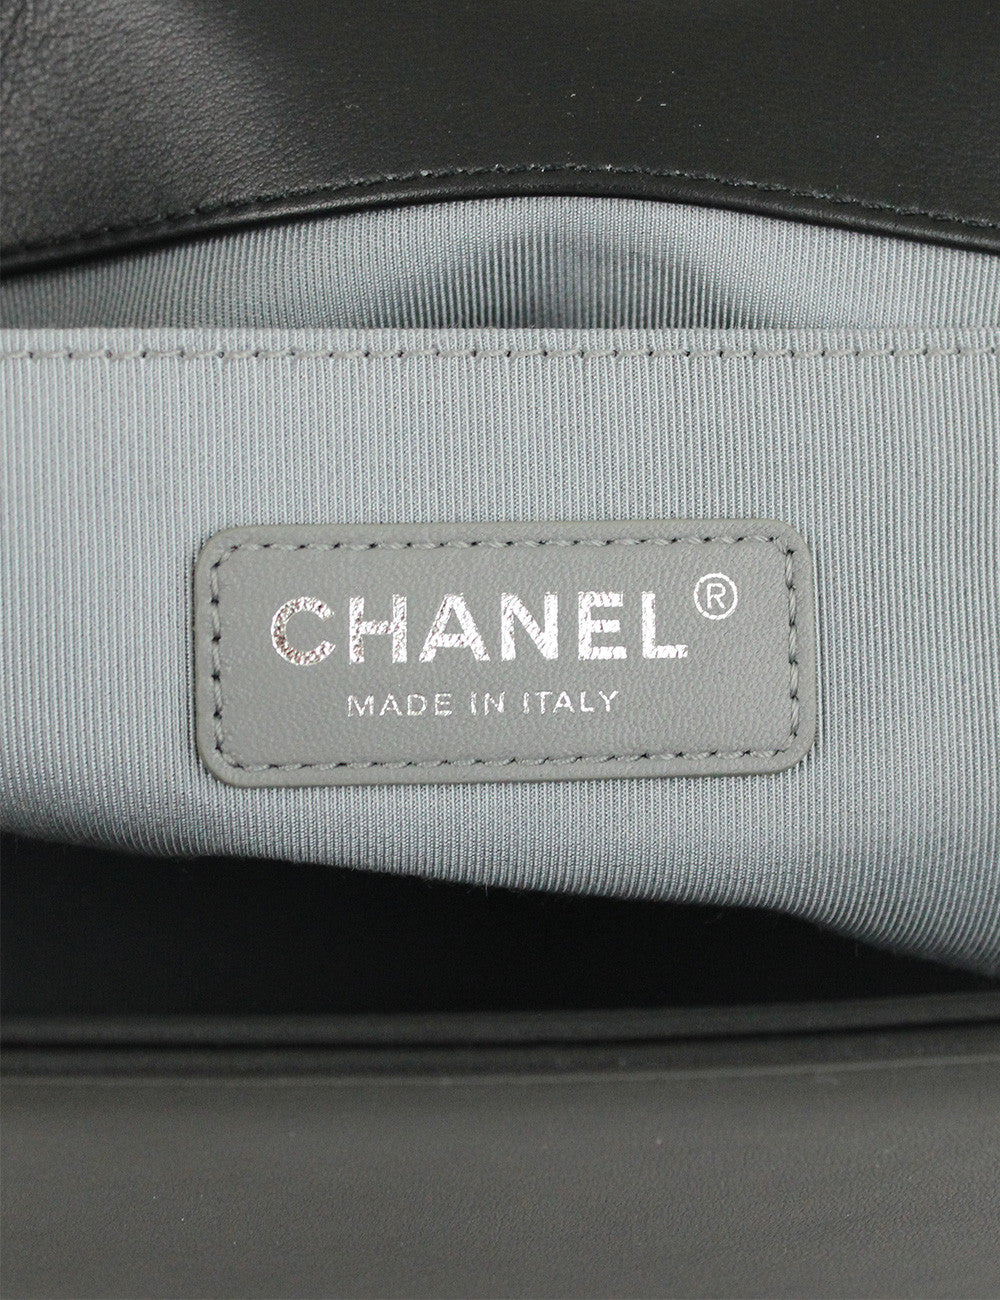 Chanel <br> Chevron Medium Boy Flap Bag